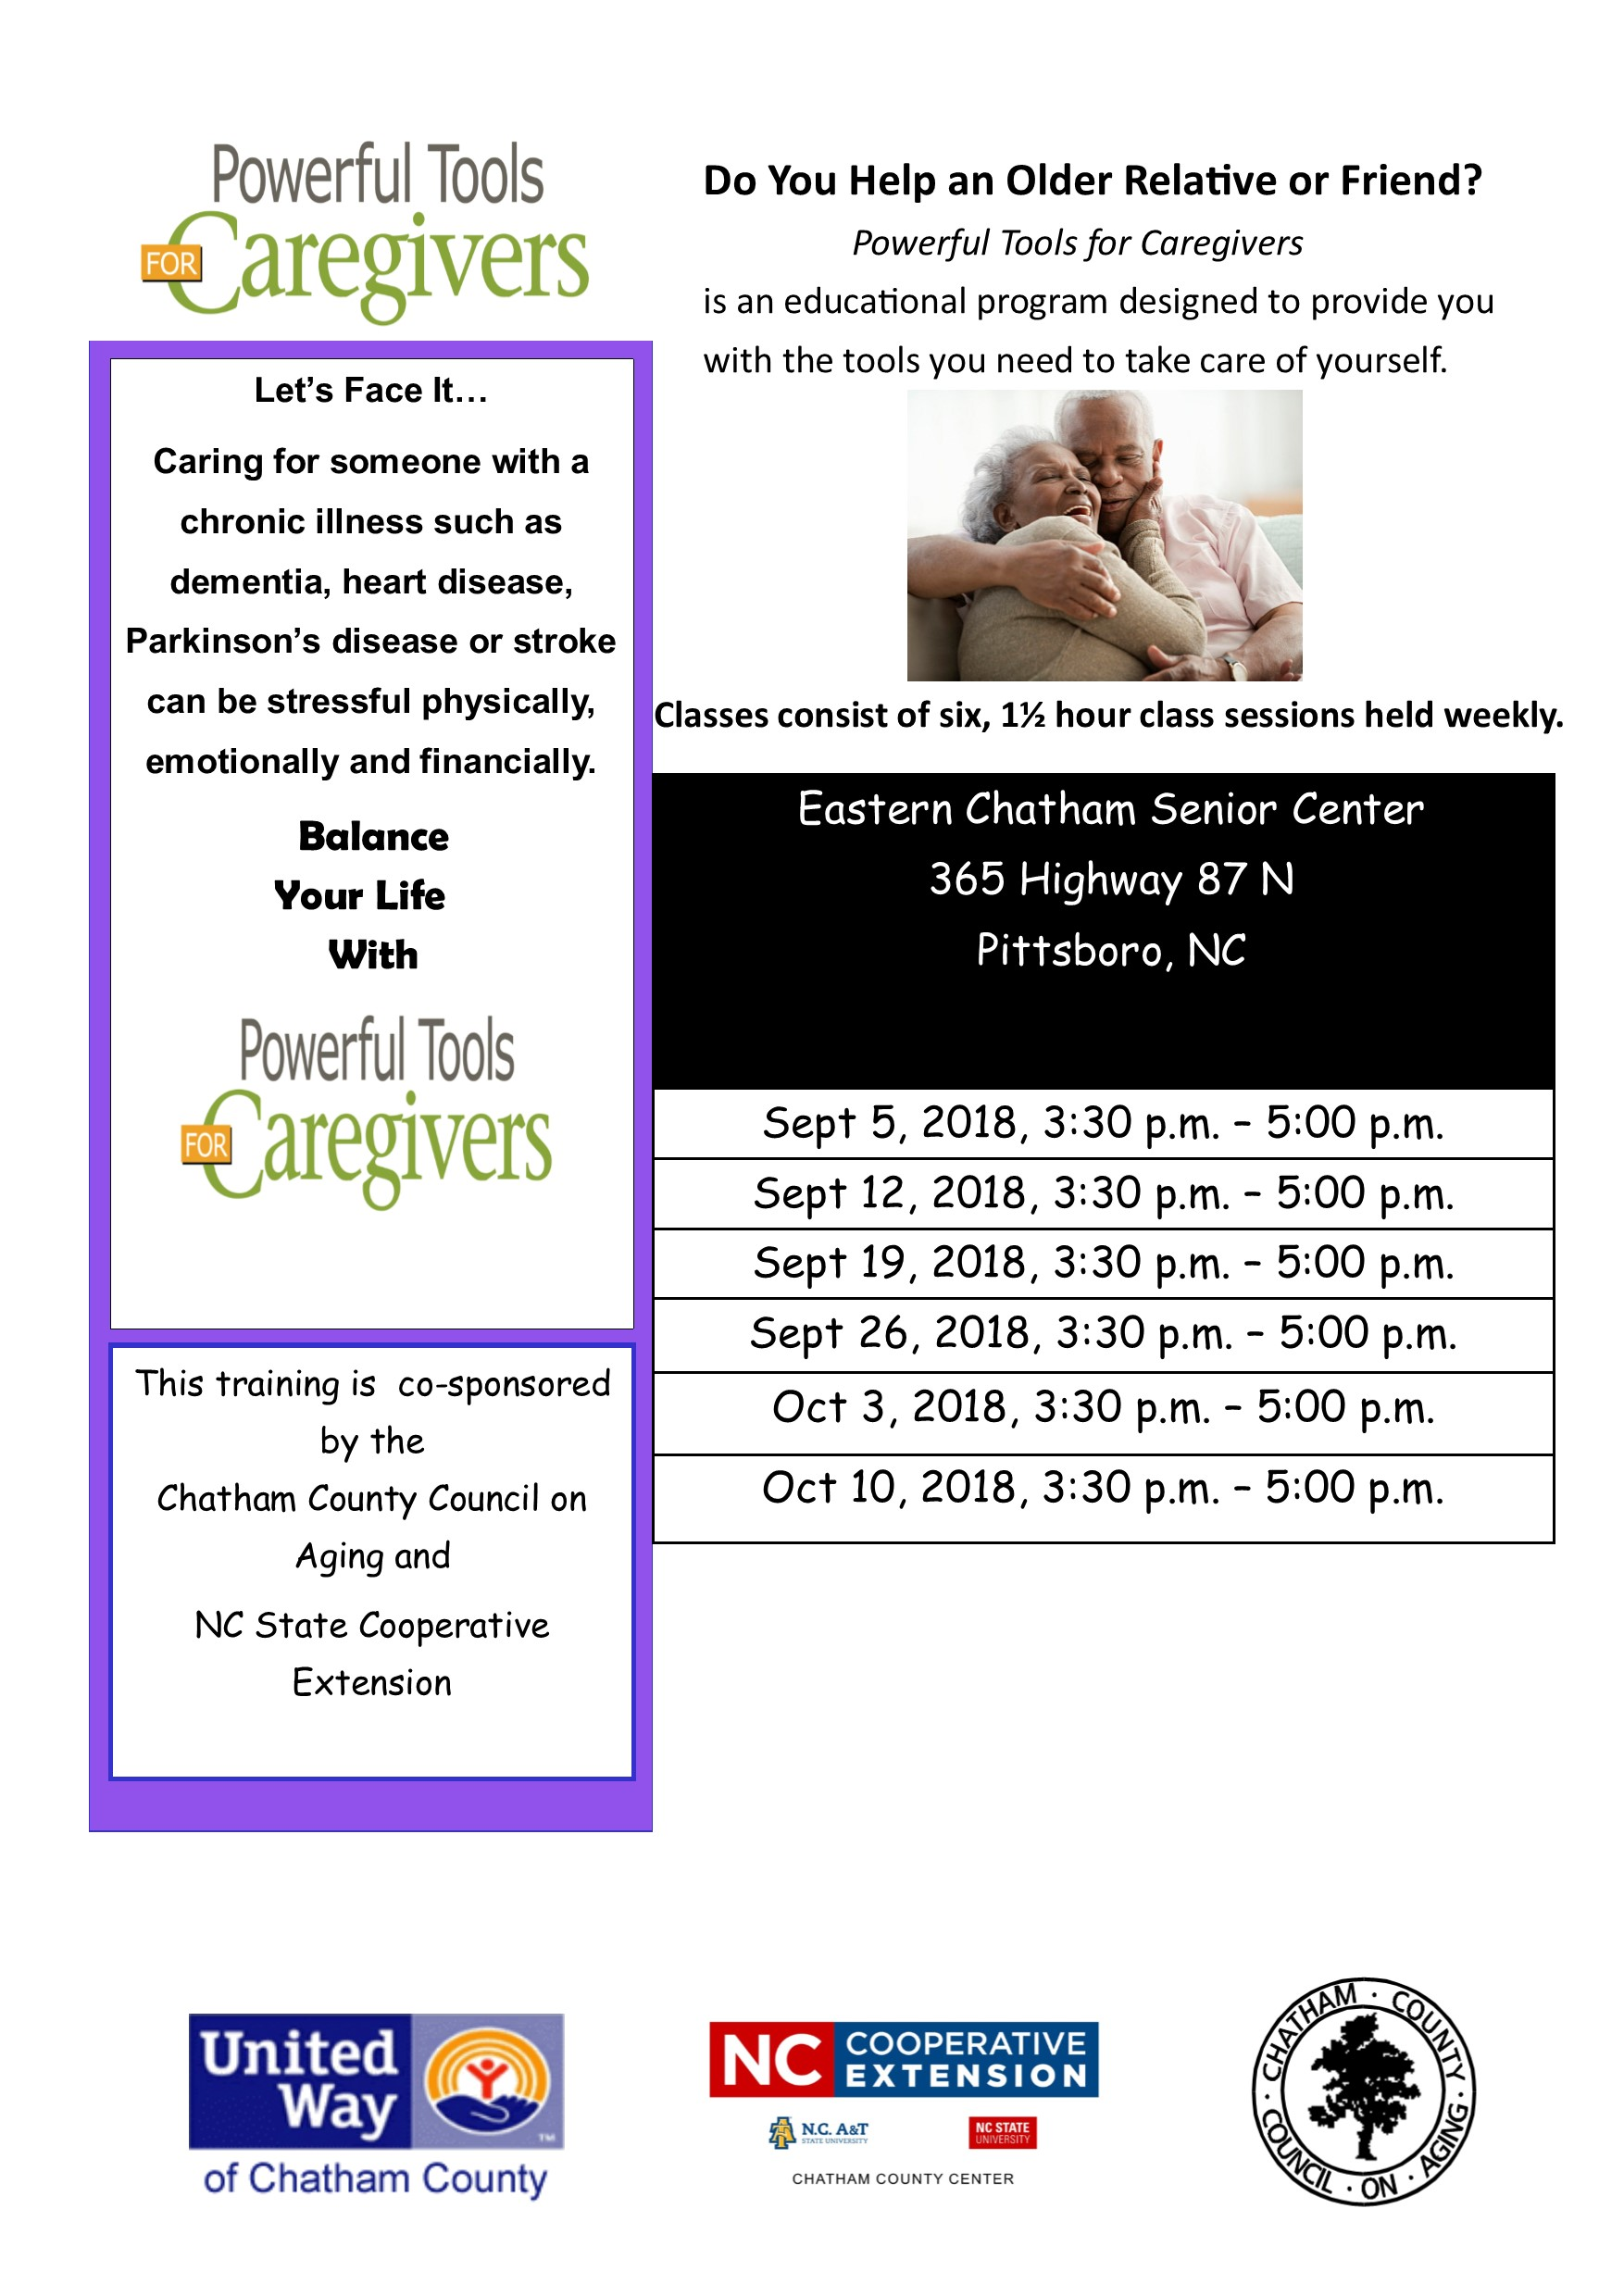 Powerful Tools for Caregivers flyer